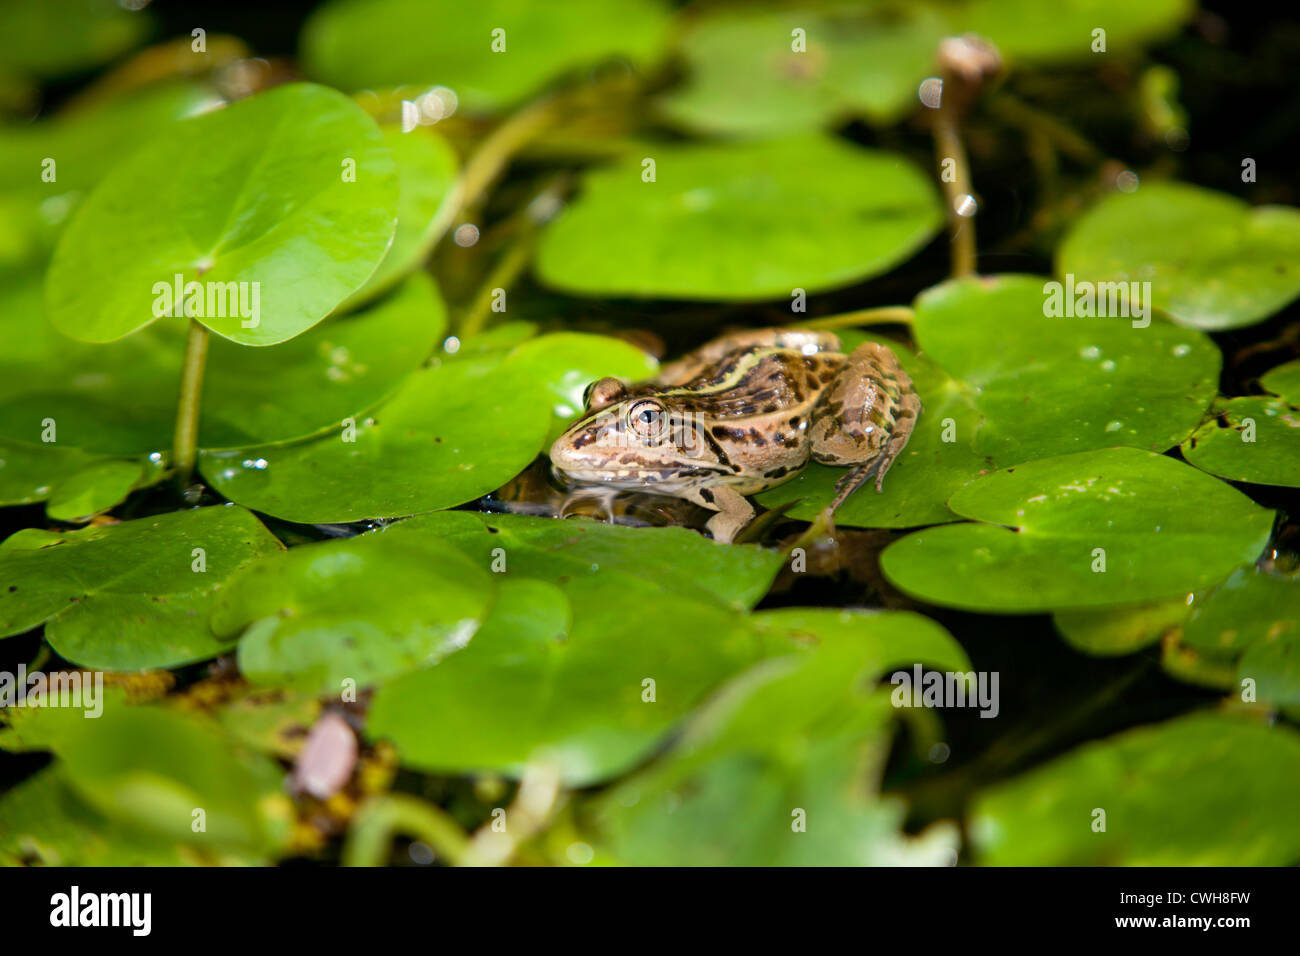 toad lily pad stockfotos toad lily pad bilder alamy. Black Bedroom Furniture Sets. Home Design Ideas